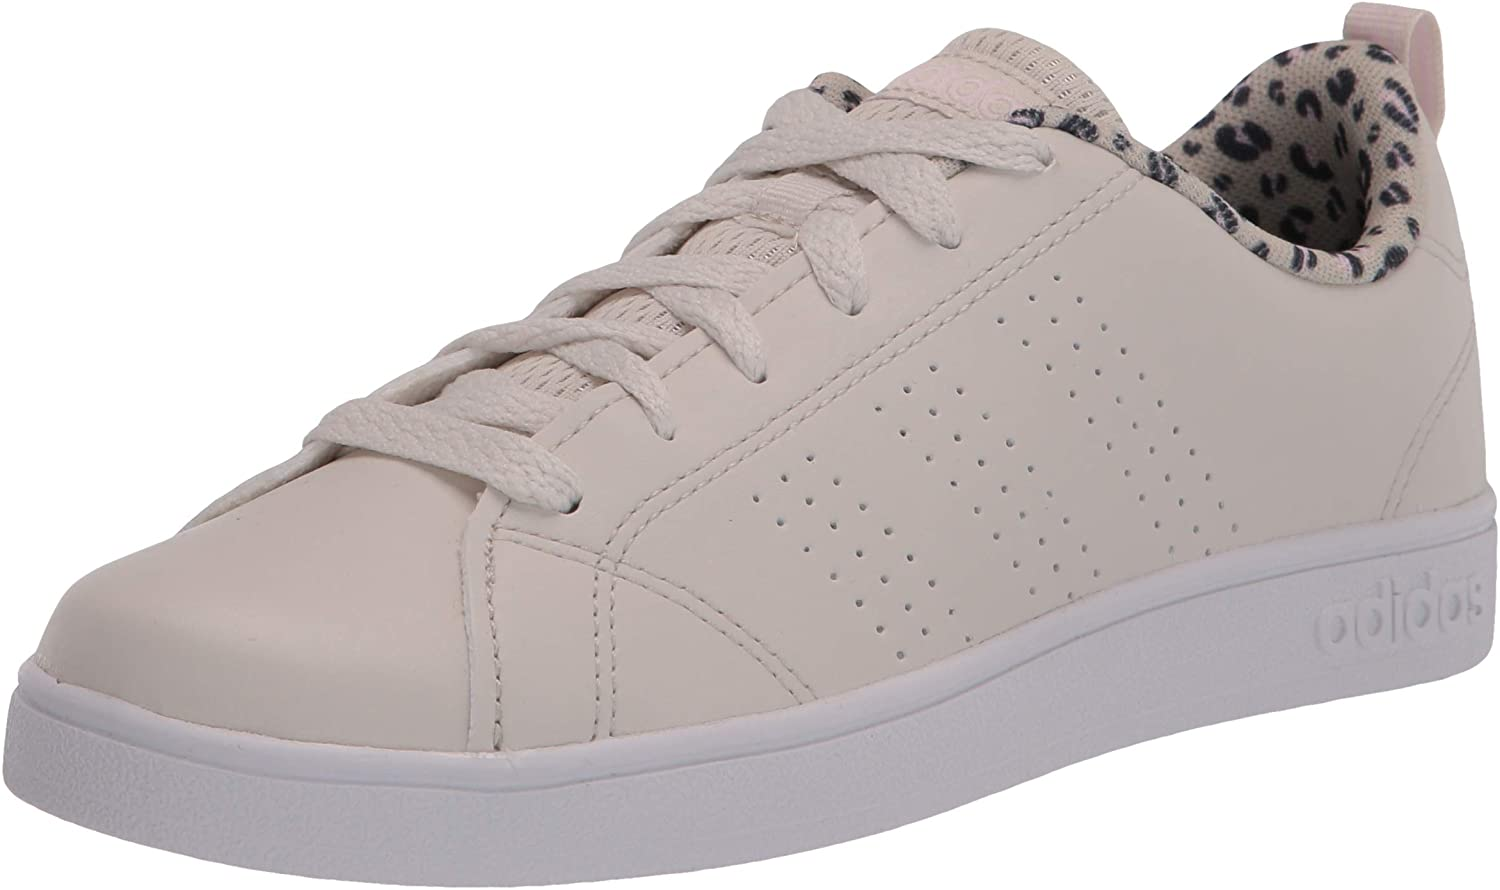 adidas VS Advantage Clean Shoes Kids', White, Size 13.5K